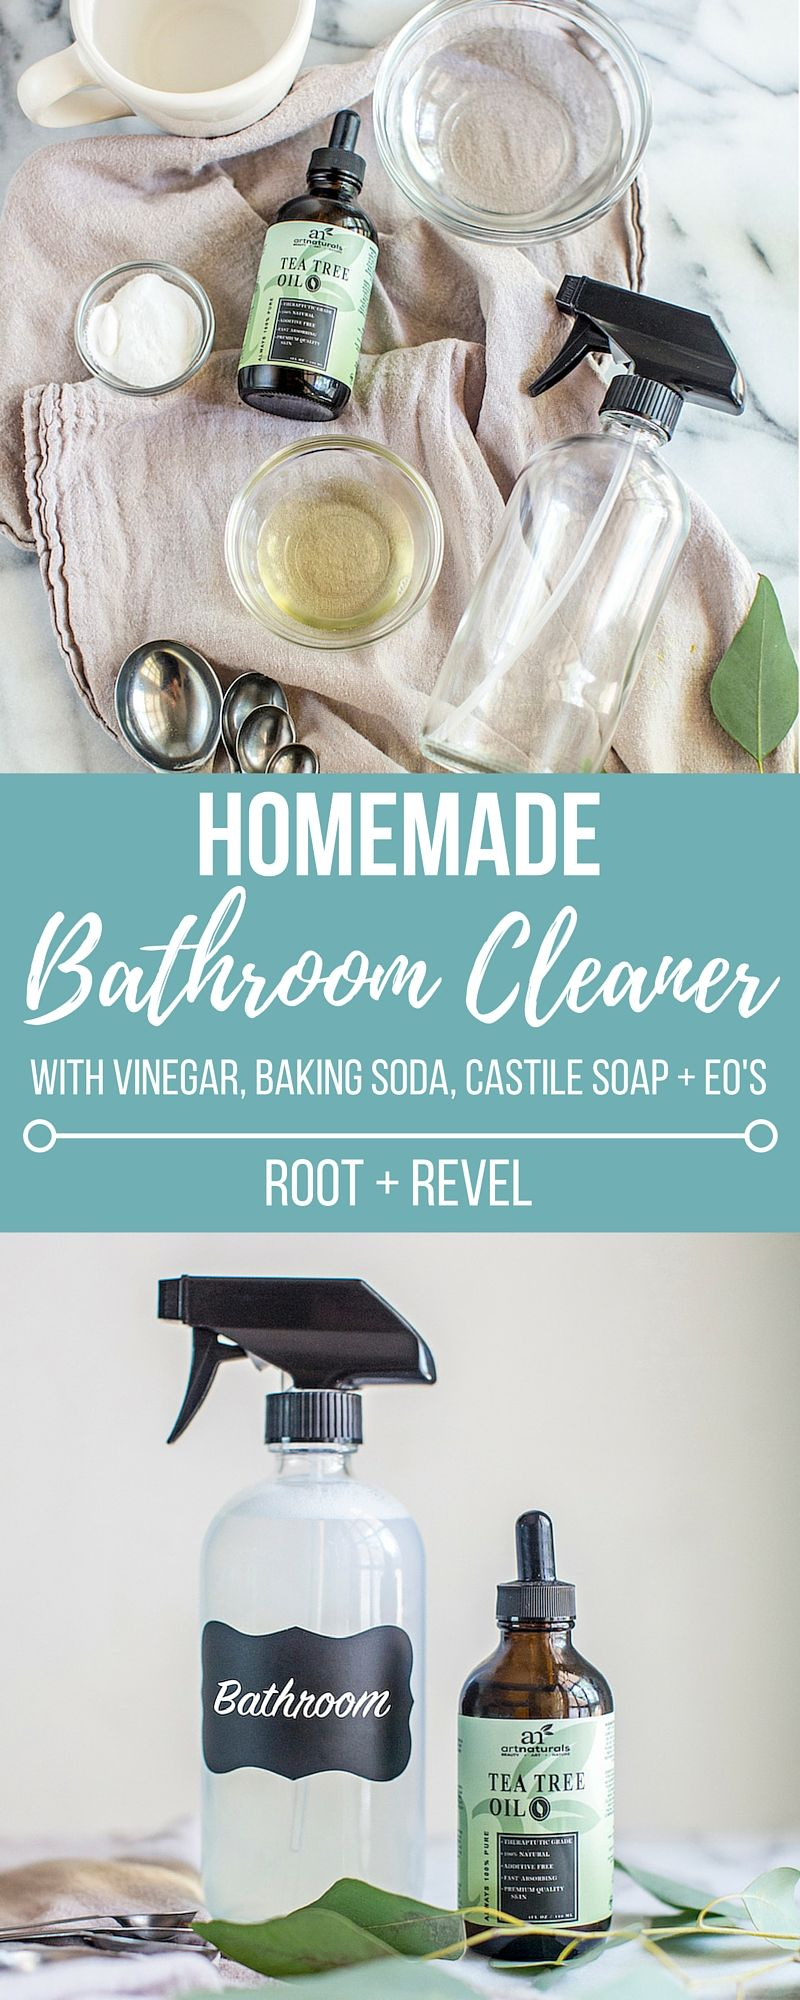 How to make bathroom cleaner with vinegar - This Homemade Bathroom Cleaner With Vinegar Baking Soda Castile Soap And Essential Oils Is